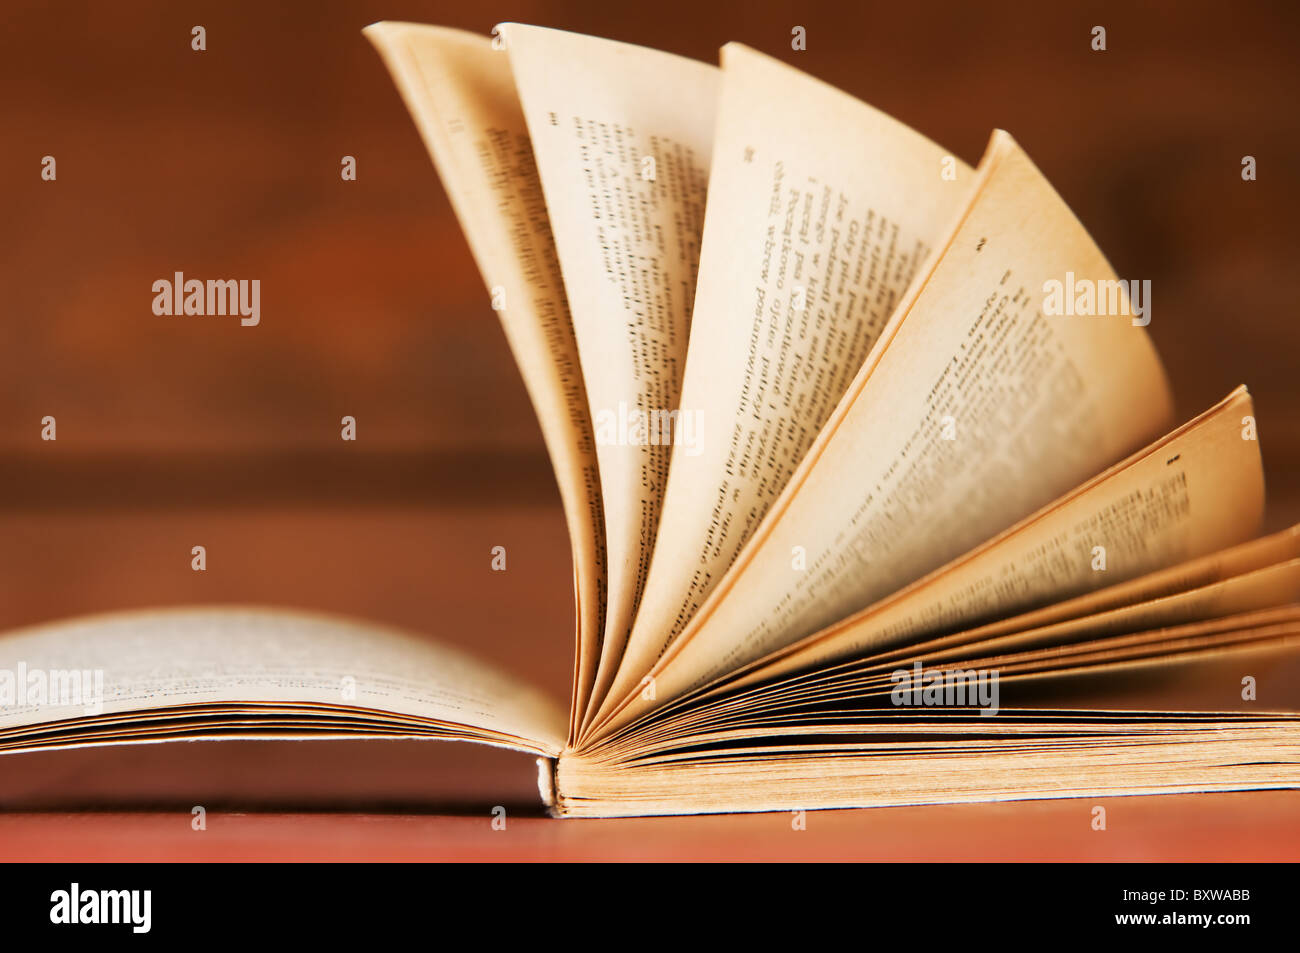 Open book in retro style on wooden background. Education concepts - Stock Image